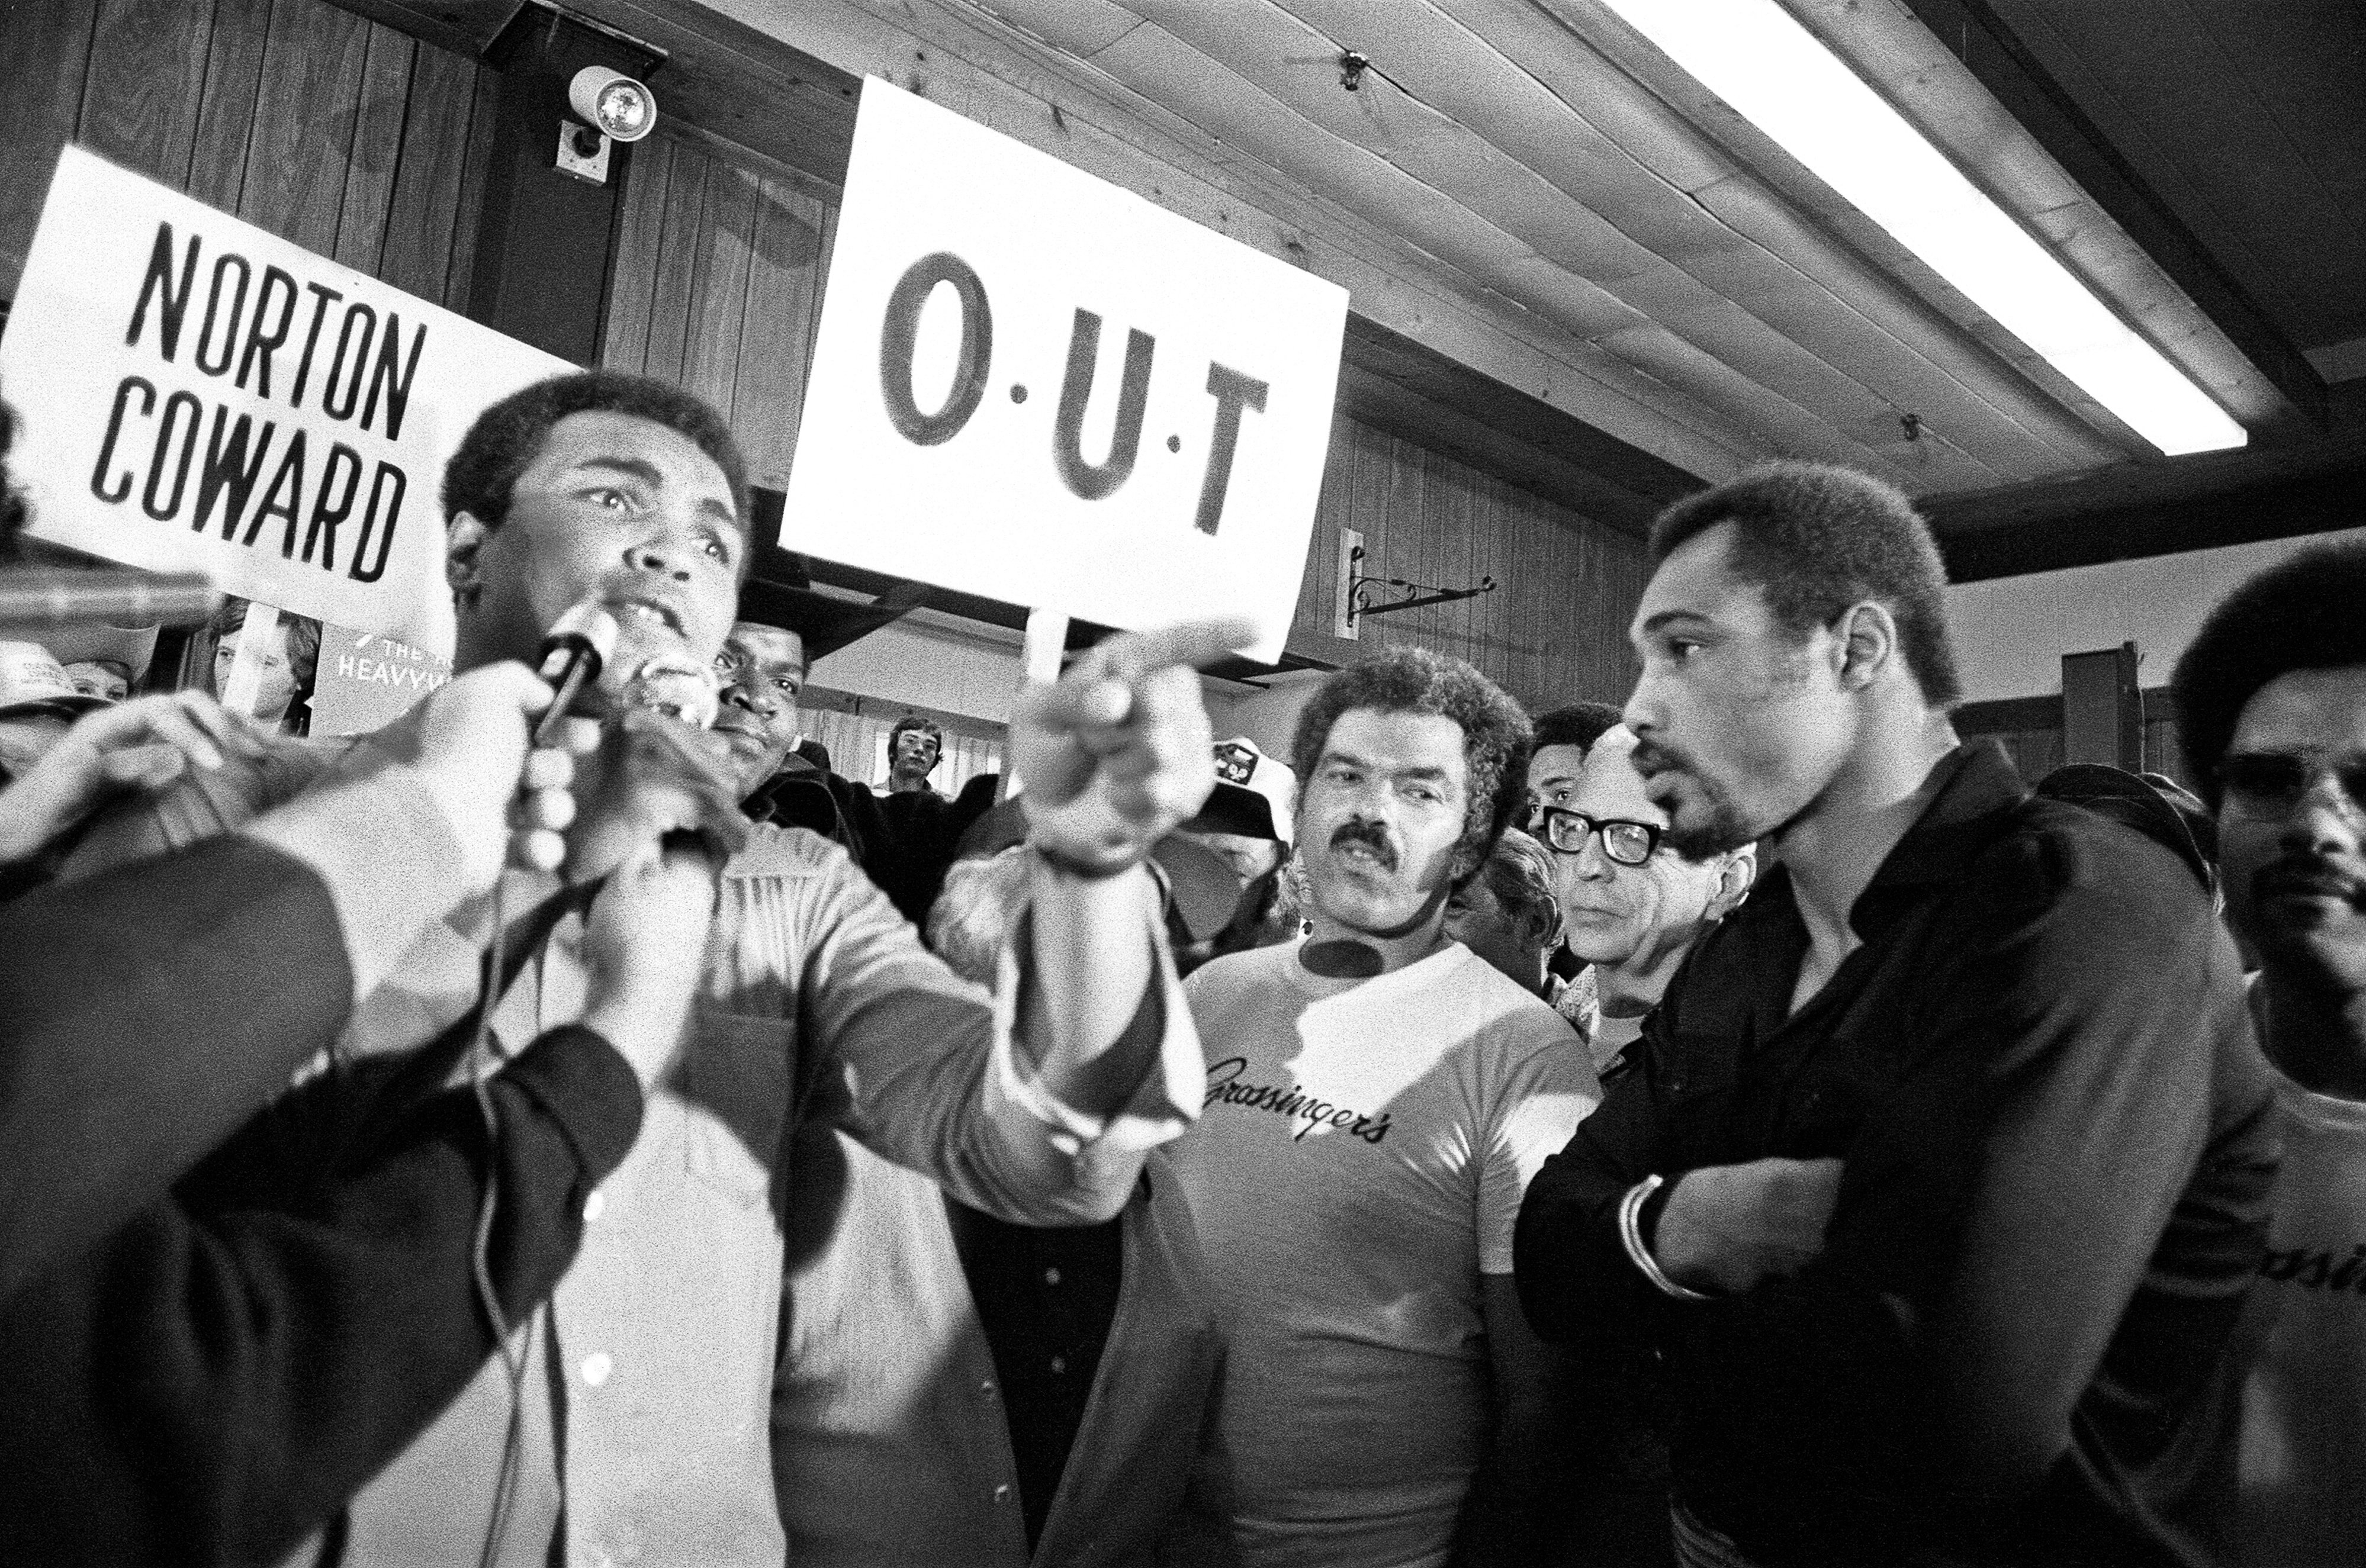 Muhammad Ali and his entourage taunt Ken Norton ahead of their third fight in New York on Sept. 23, 1976. File photo by Action Images/MSI via Reuters